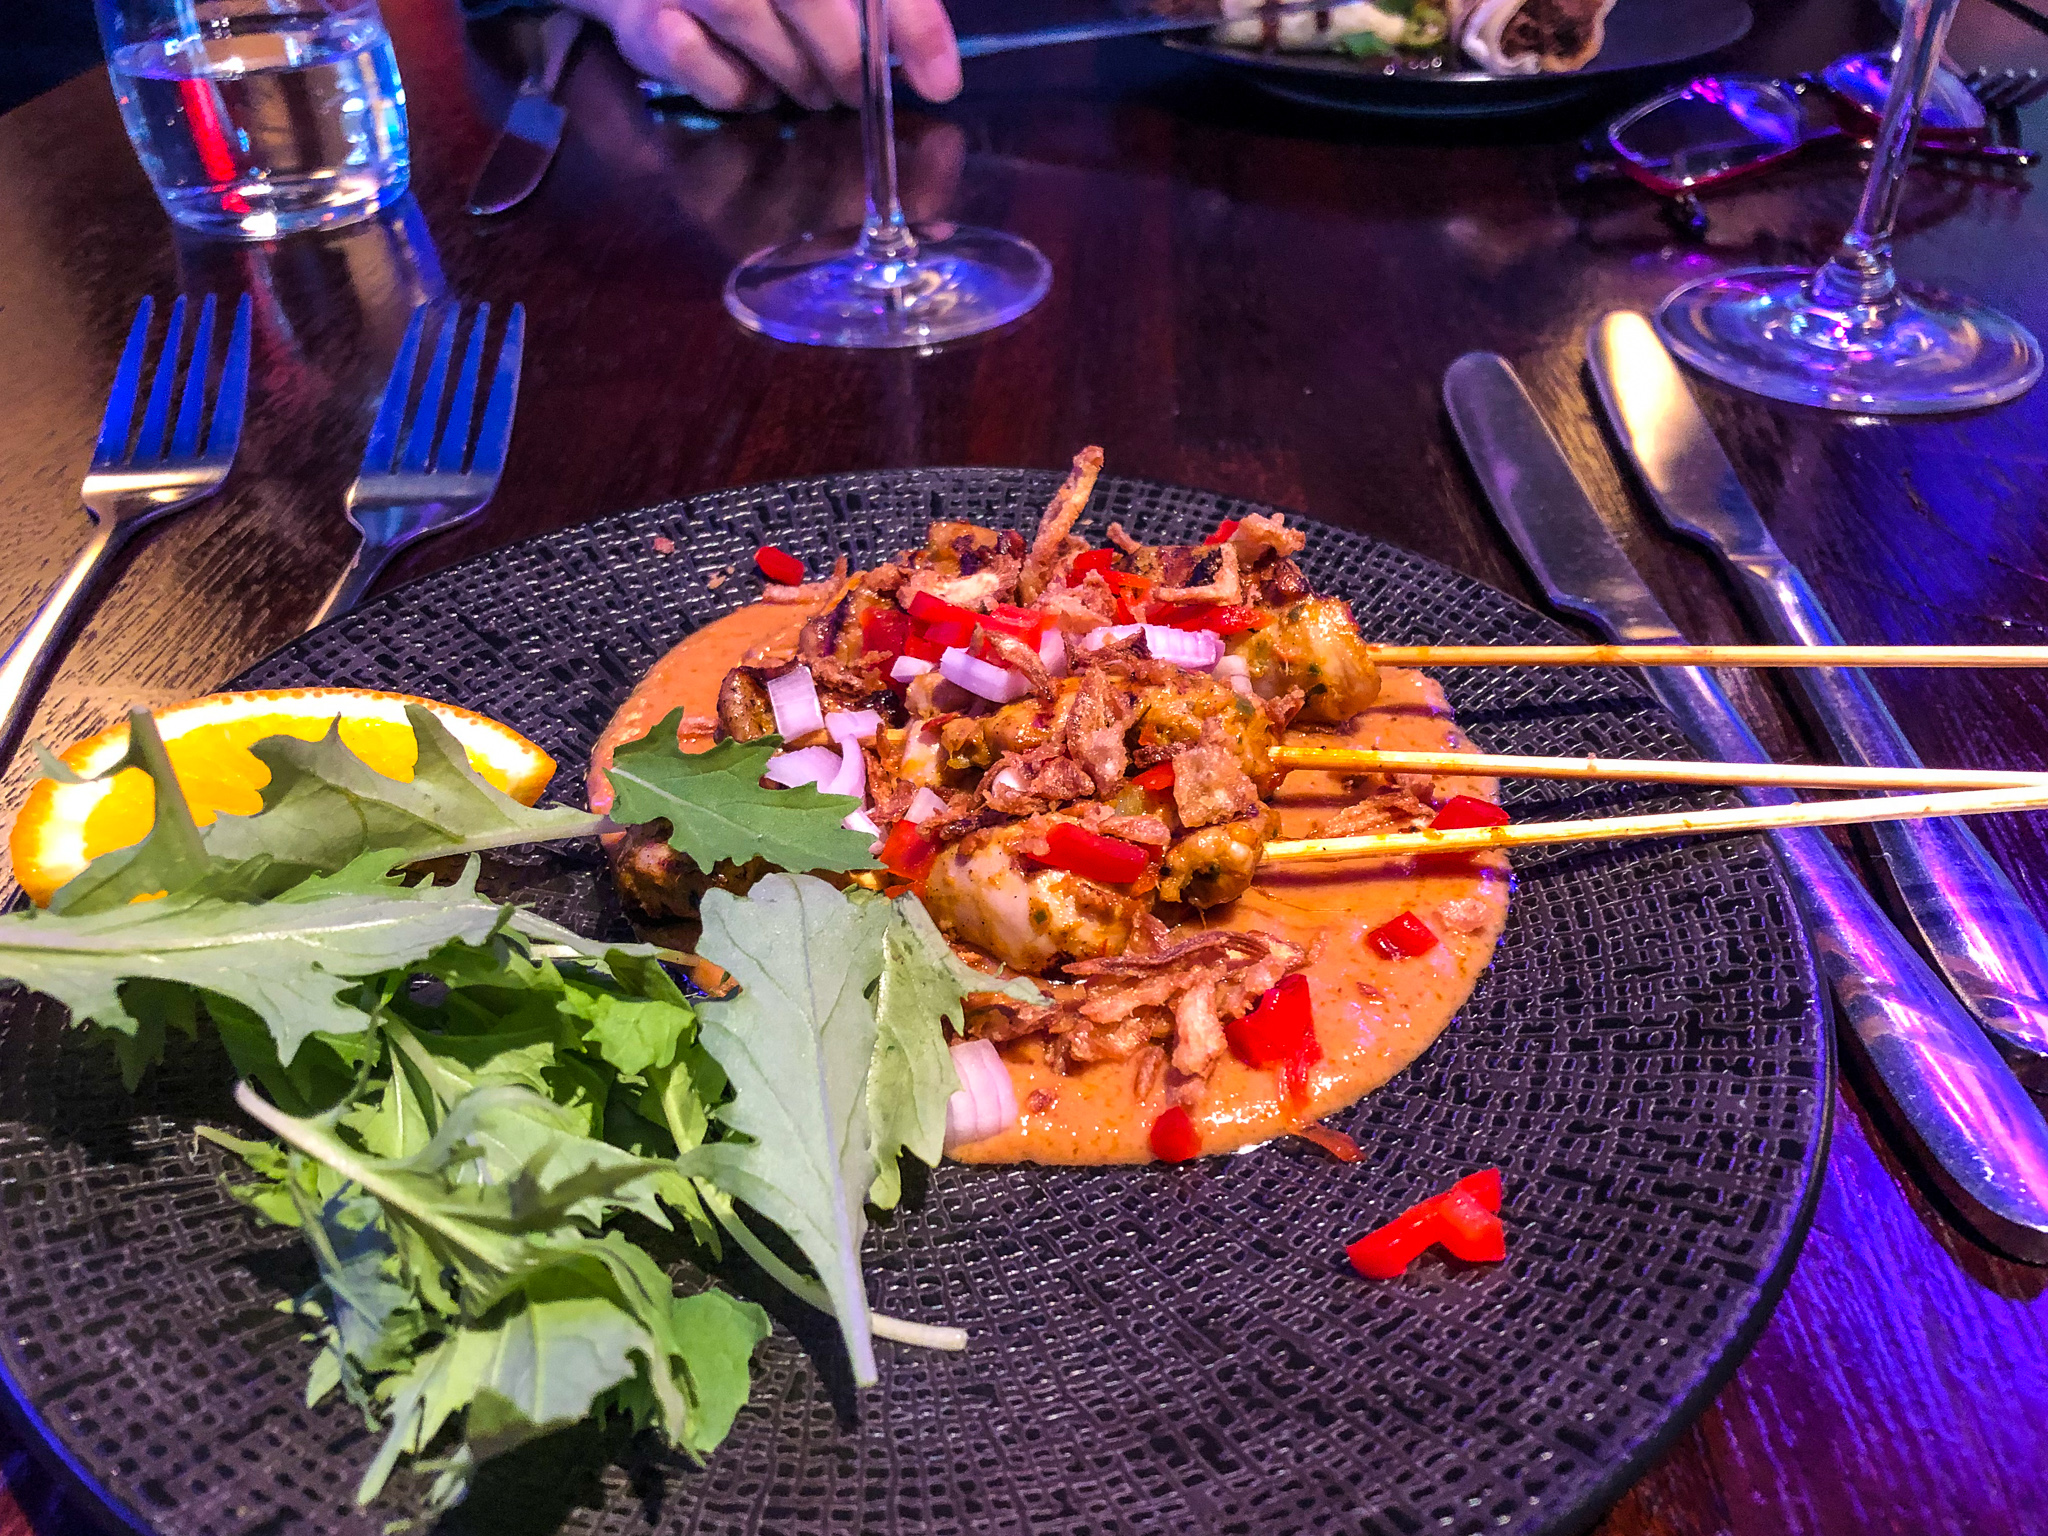 eating indonesian food should go in your 2 days in amsterdam itinerary